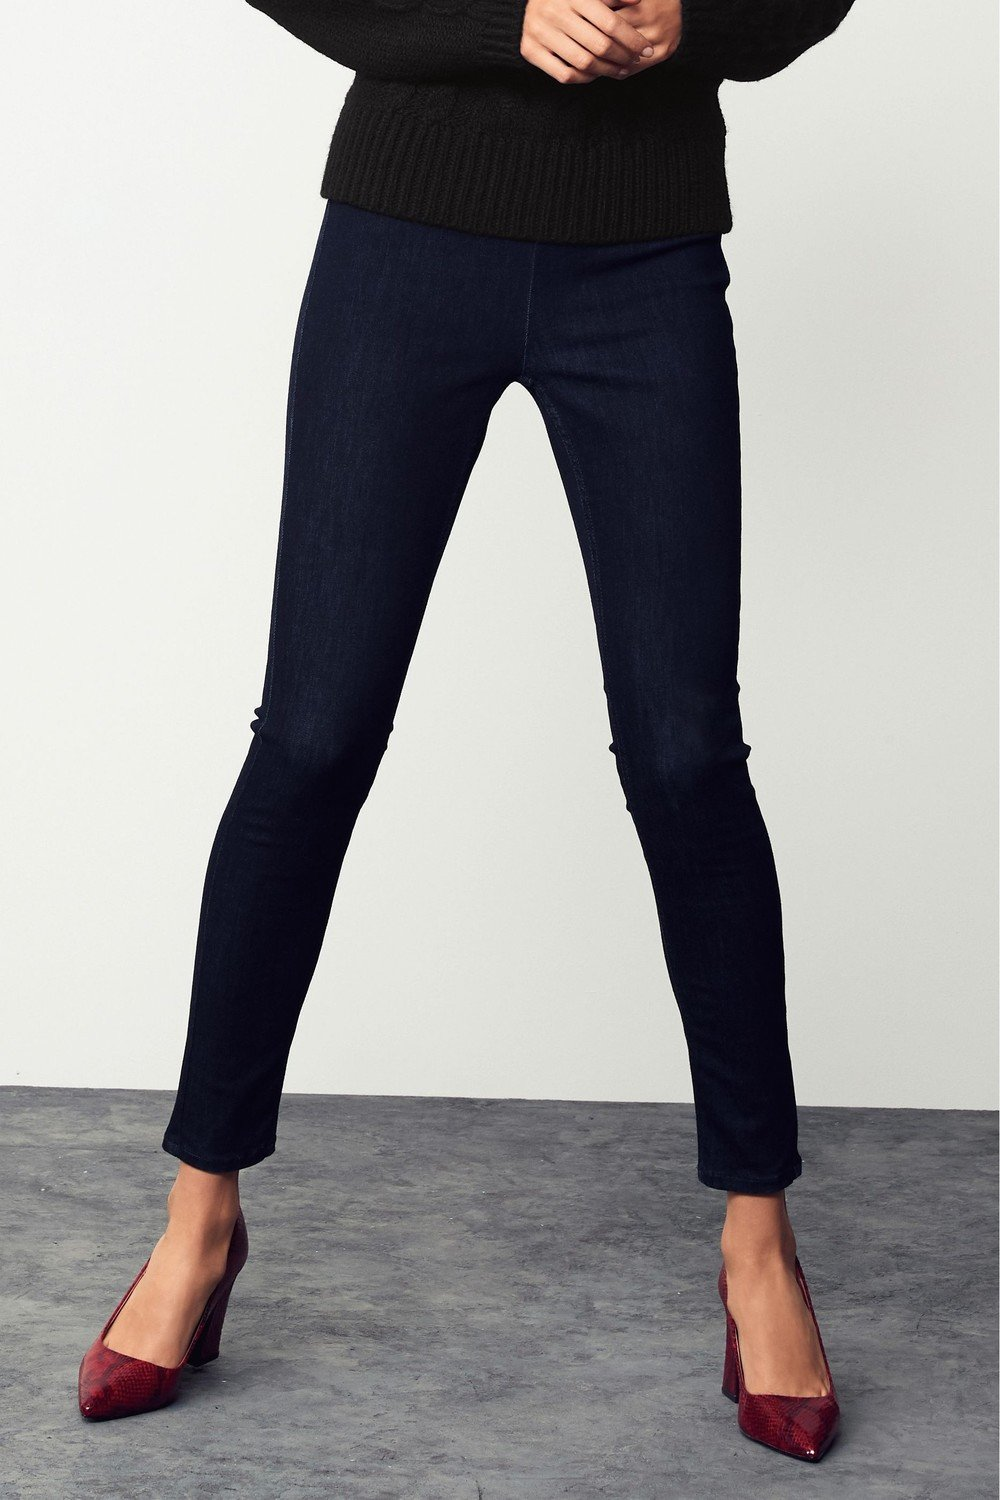 hot-selling clearance best service outlet for sale Next Ankle Length Denim Leggings-Petite